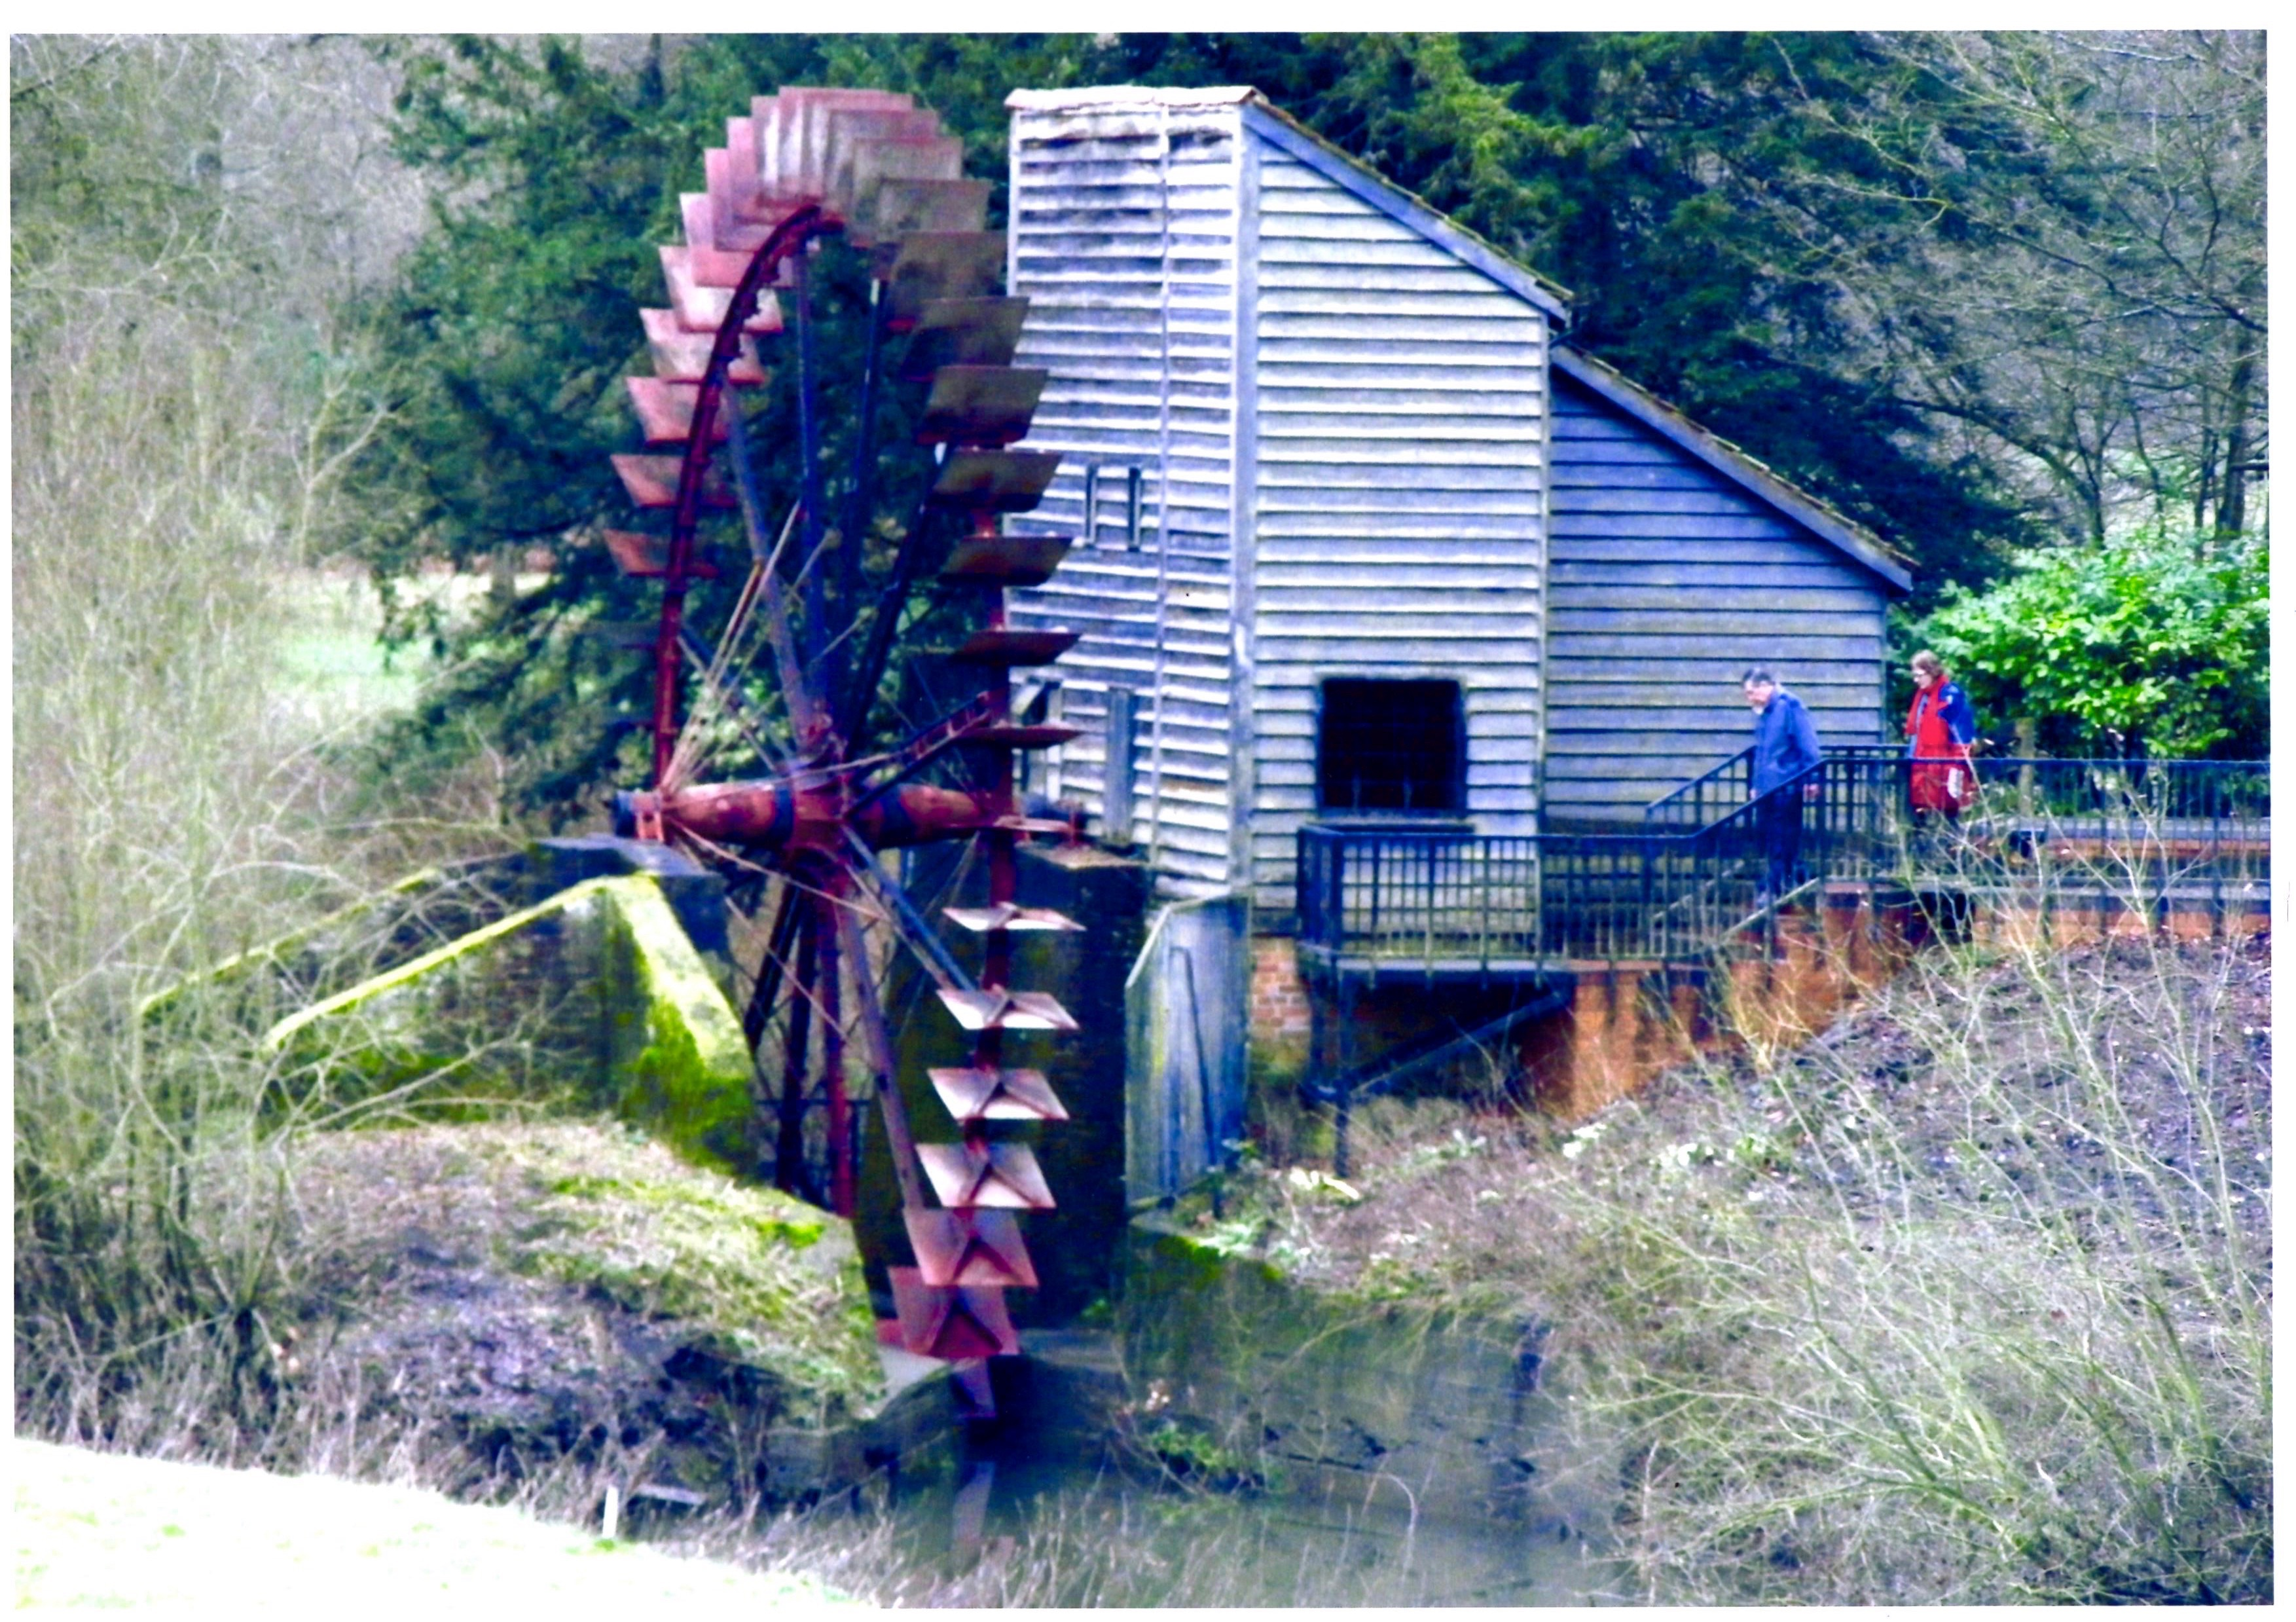 Painshill Waterwheel